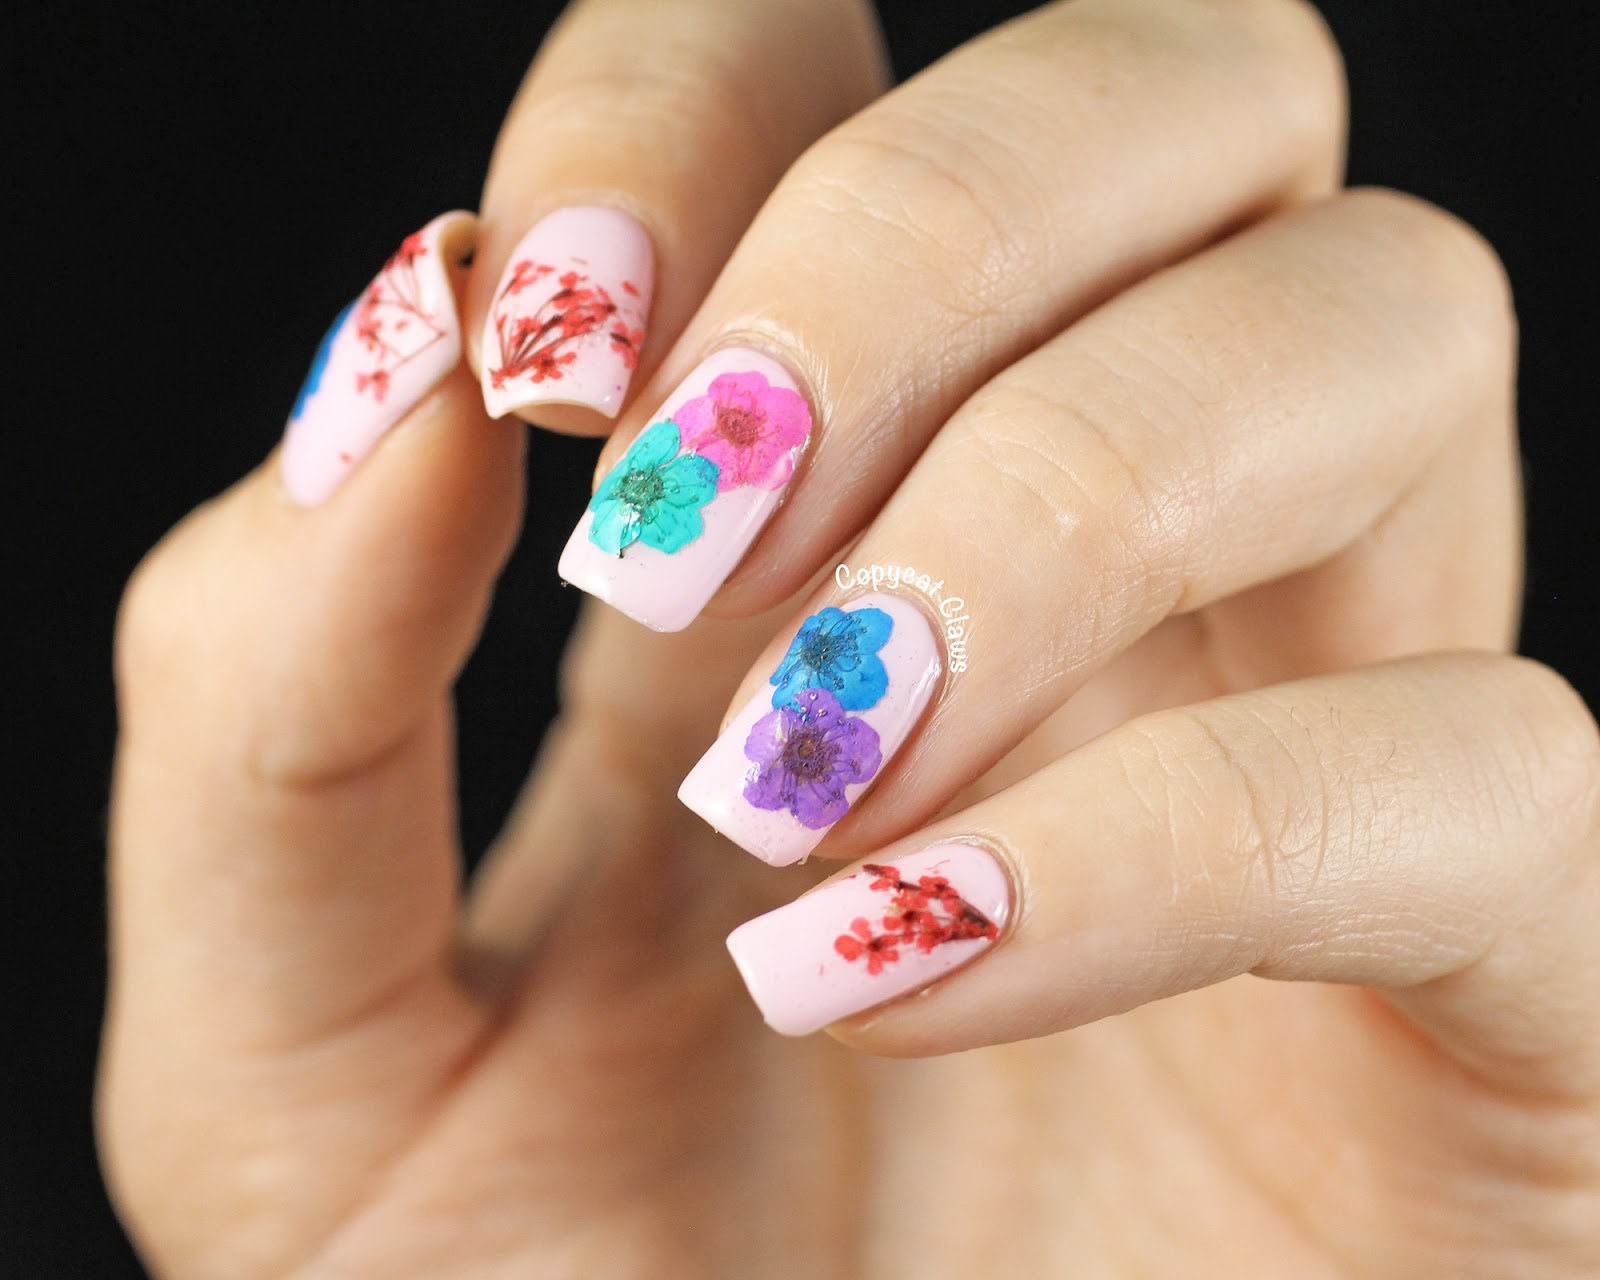 Dried flower nail art the fashion foot 4 prinsesfo Gallery